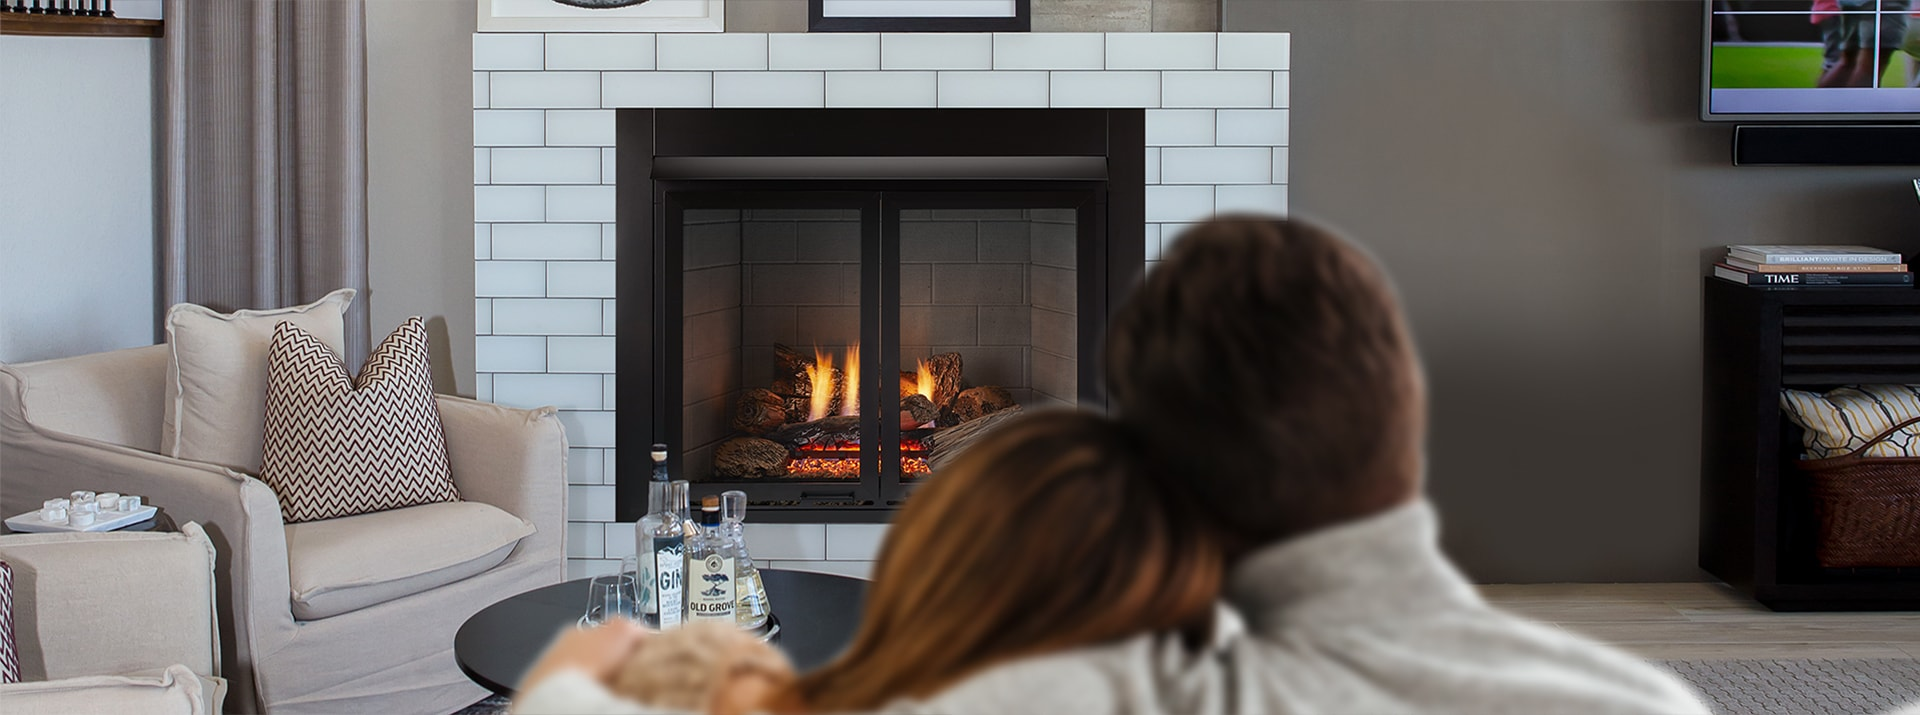 How Much Do Gas Fireplace Logs Cost Monessen Hearth Vent Free Fireplaces Fireboxes Stove Gas Logs